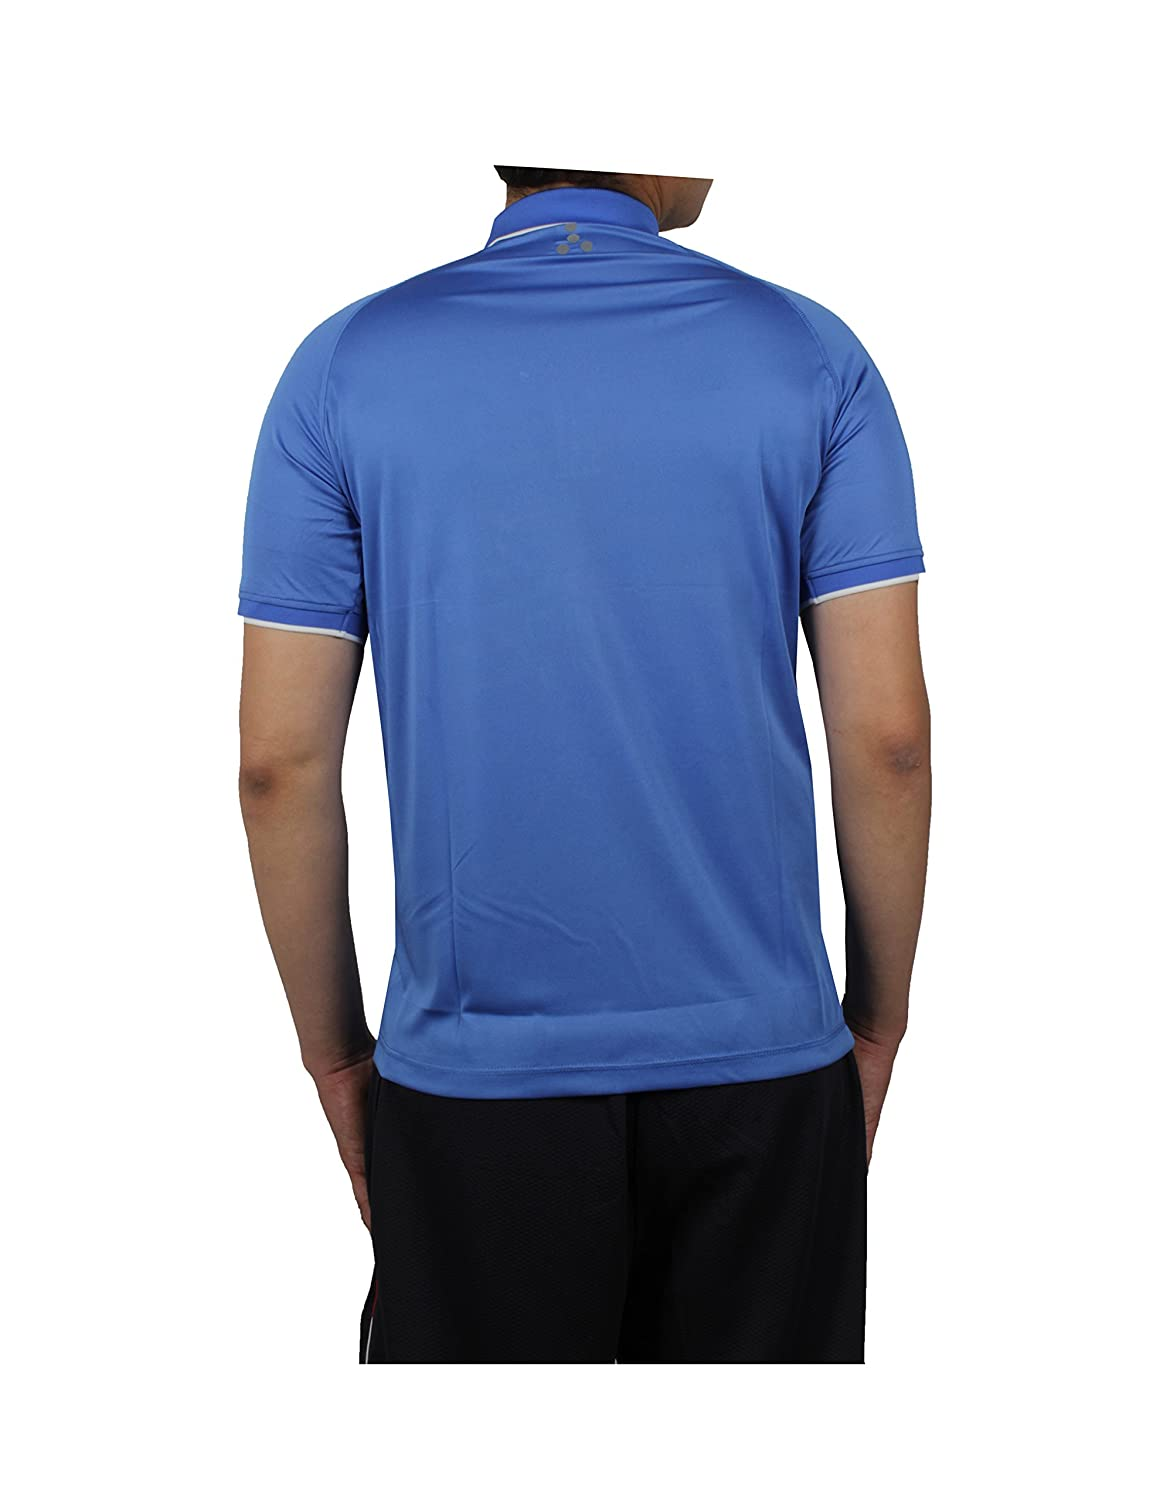 6a836a86b59 EM Sportswear Men's Polo Performance Knit Color: Royal Blue (Size_Small):  Amazon.in: Clothing & Accessories